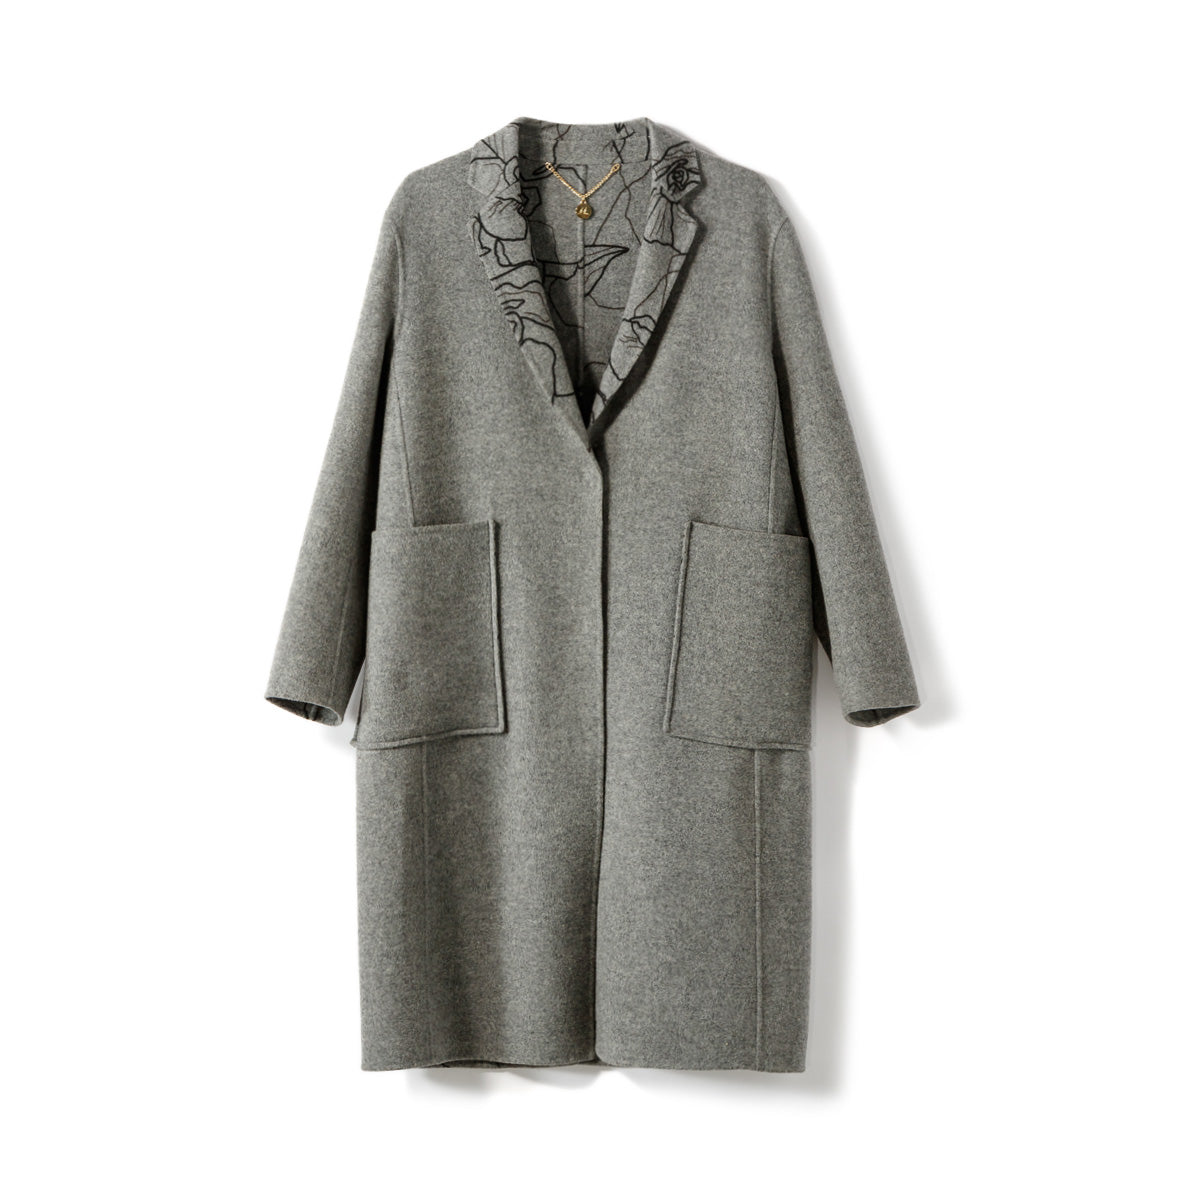 Grey Reversible Floral Abstract Print Wool Coat